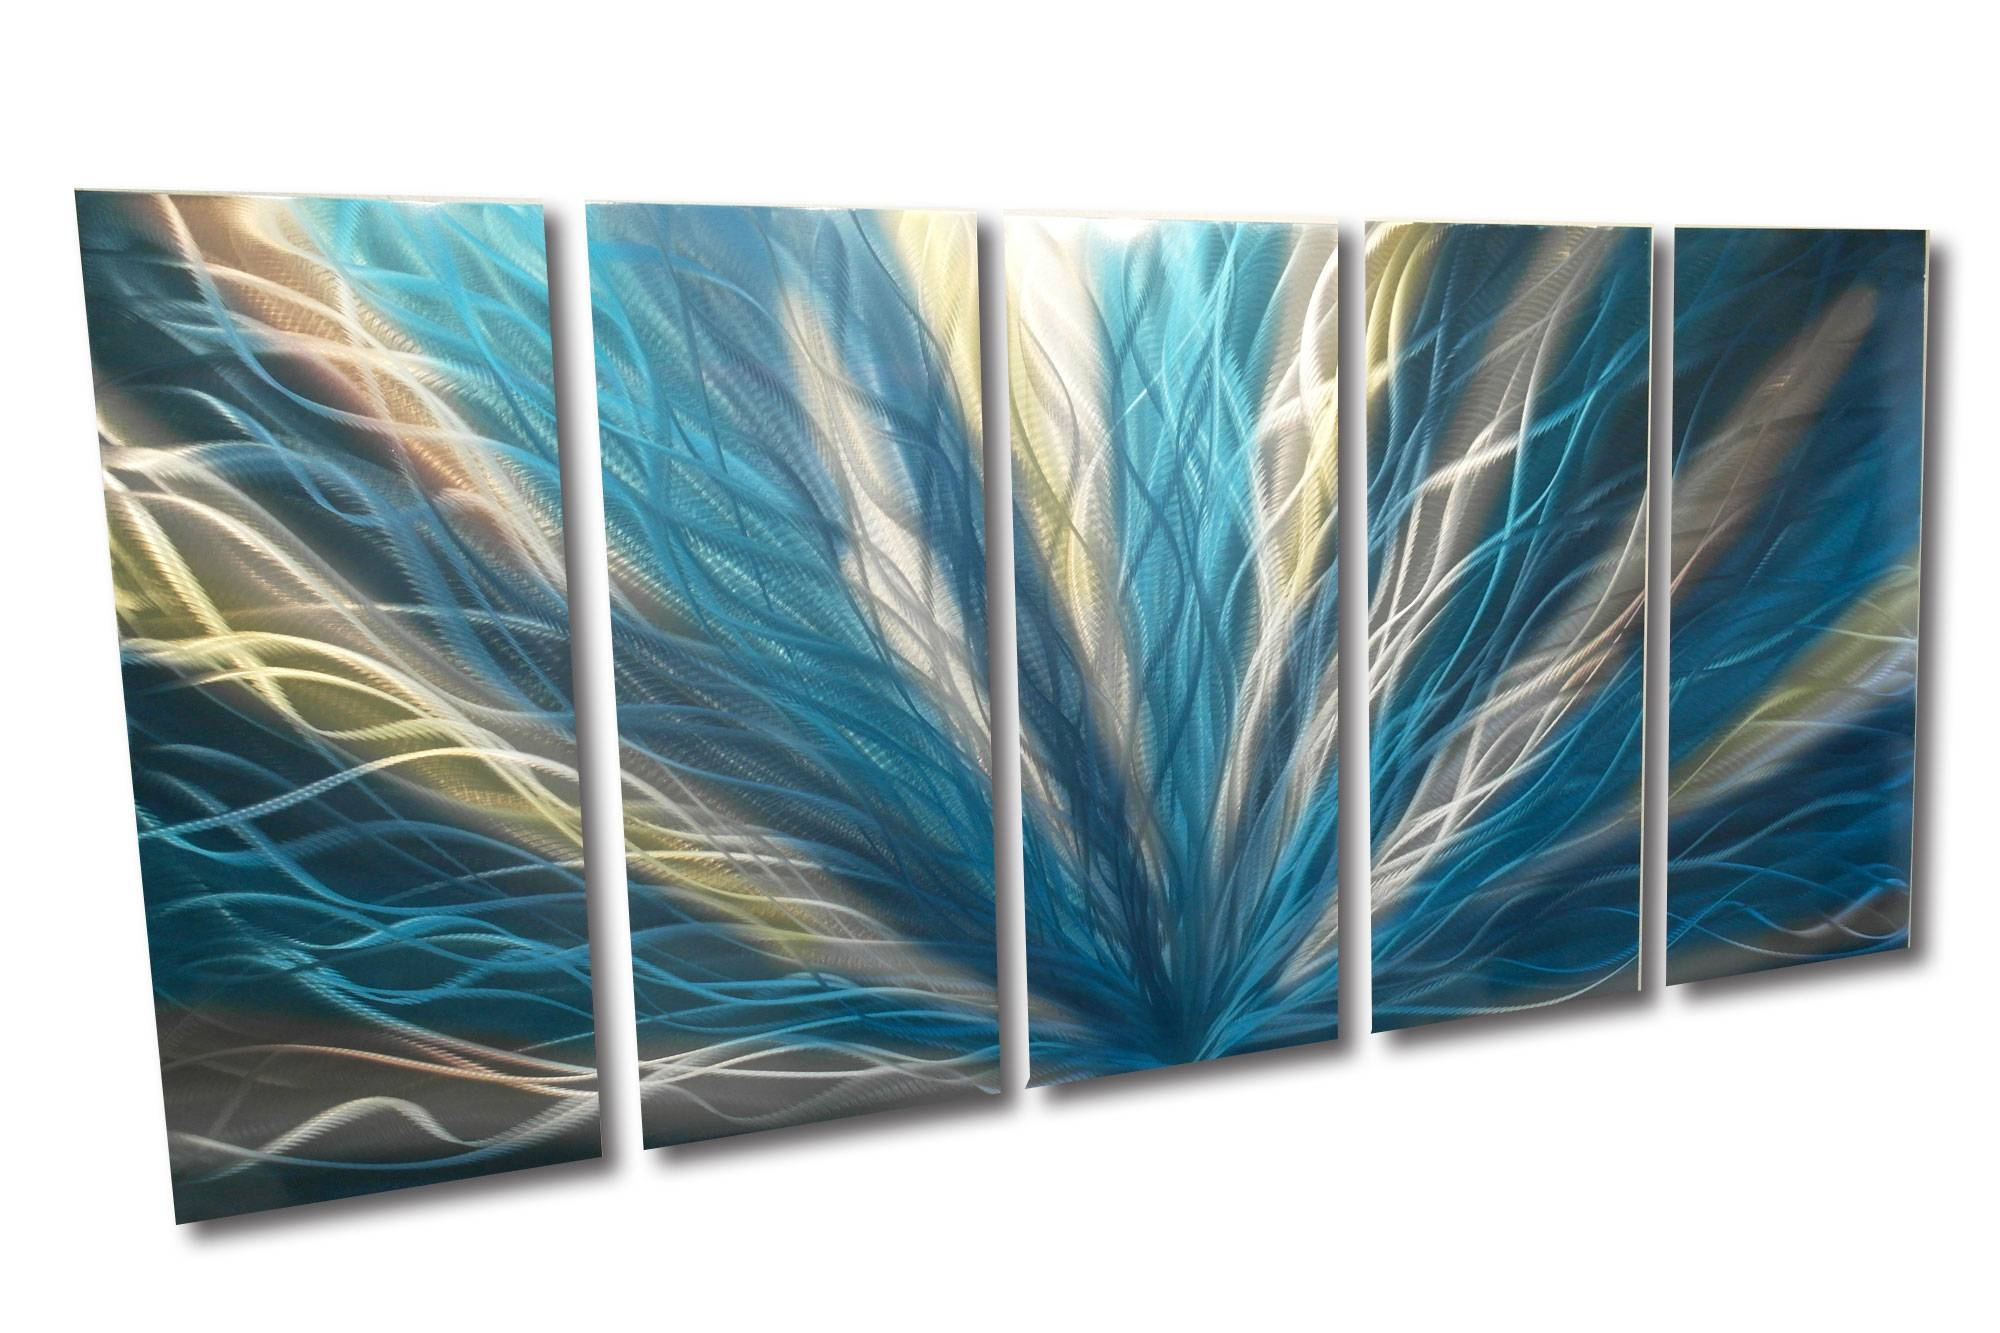 Radiance Teal 36X79 – Metal Wall Art Abstract Sculpture Modern Throughout Most Current Teal Metal Wall Art (View 13 of 20)